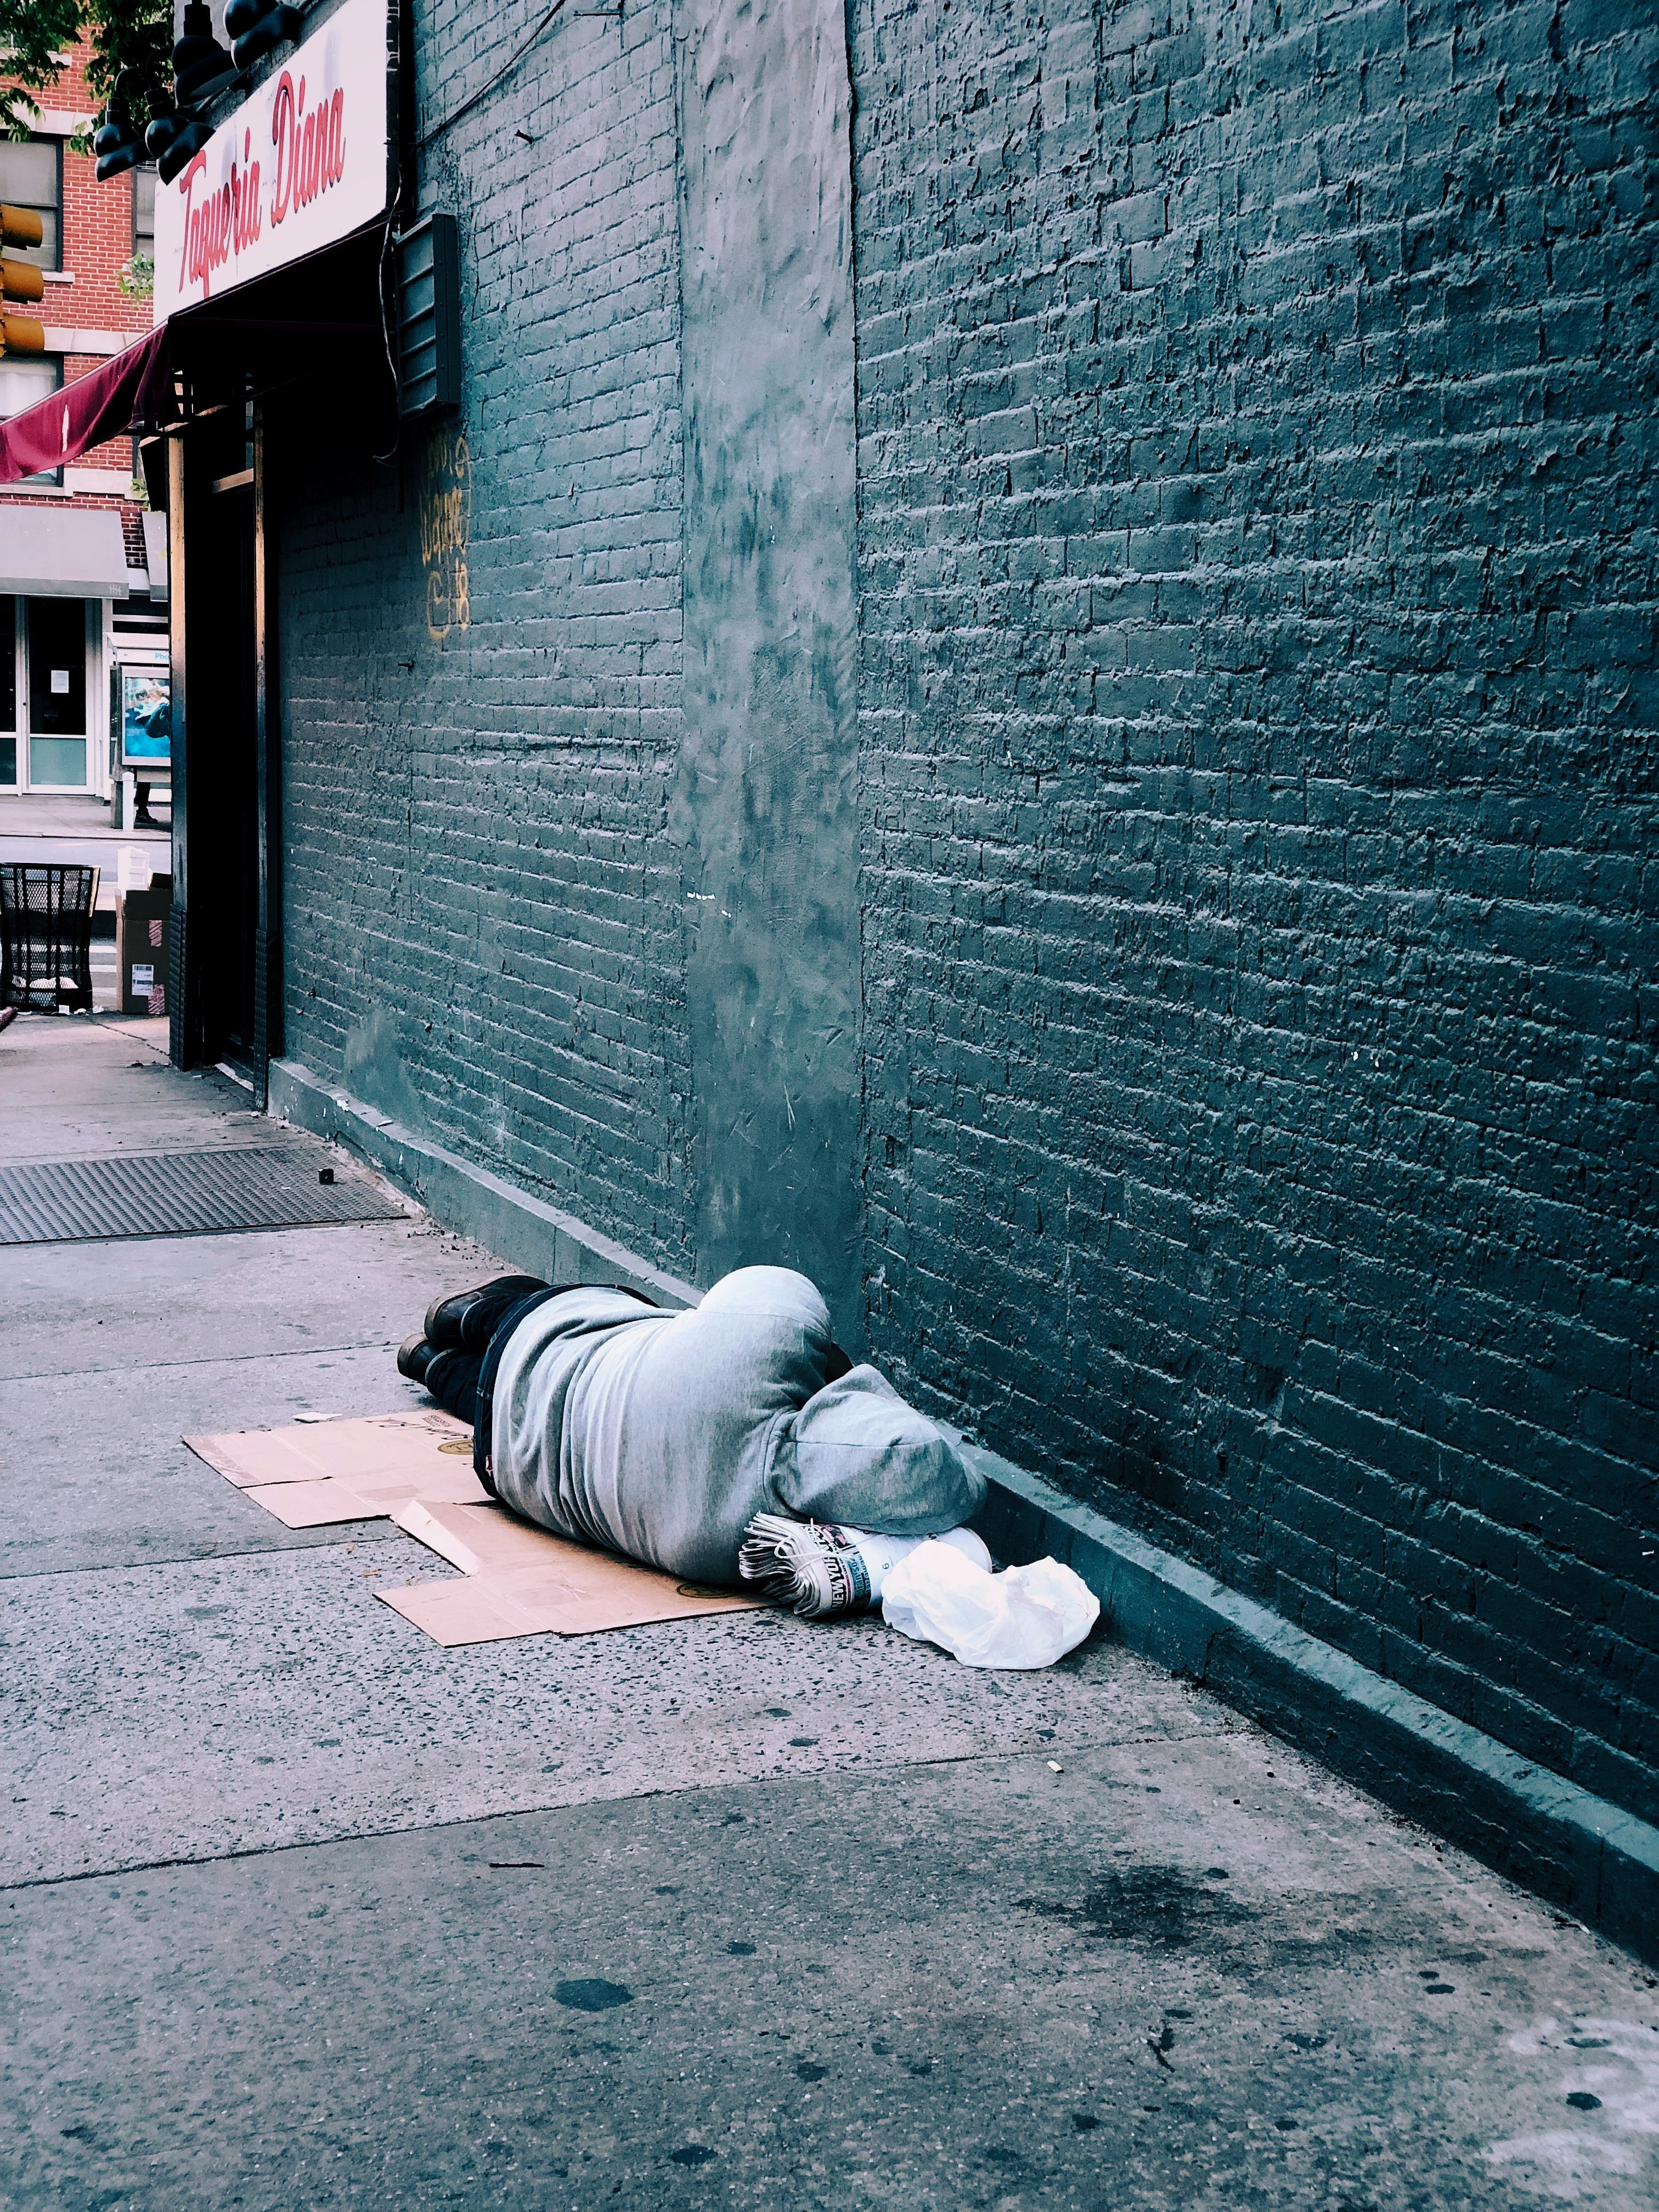 The homeless man looked like he needed medical help   Source: Pexels`